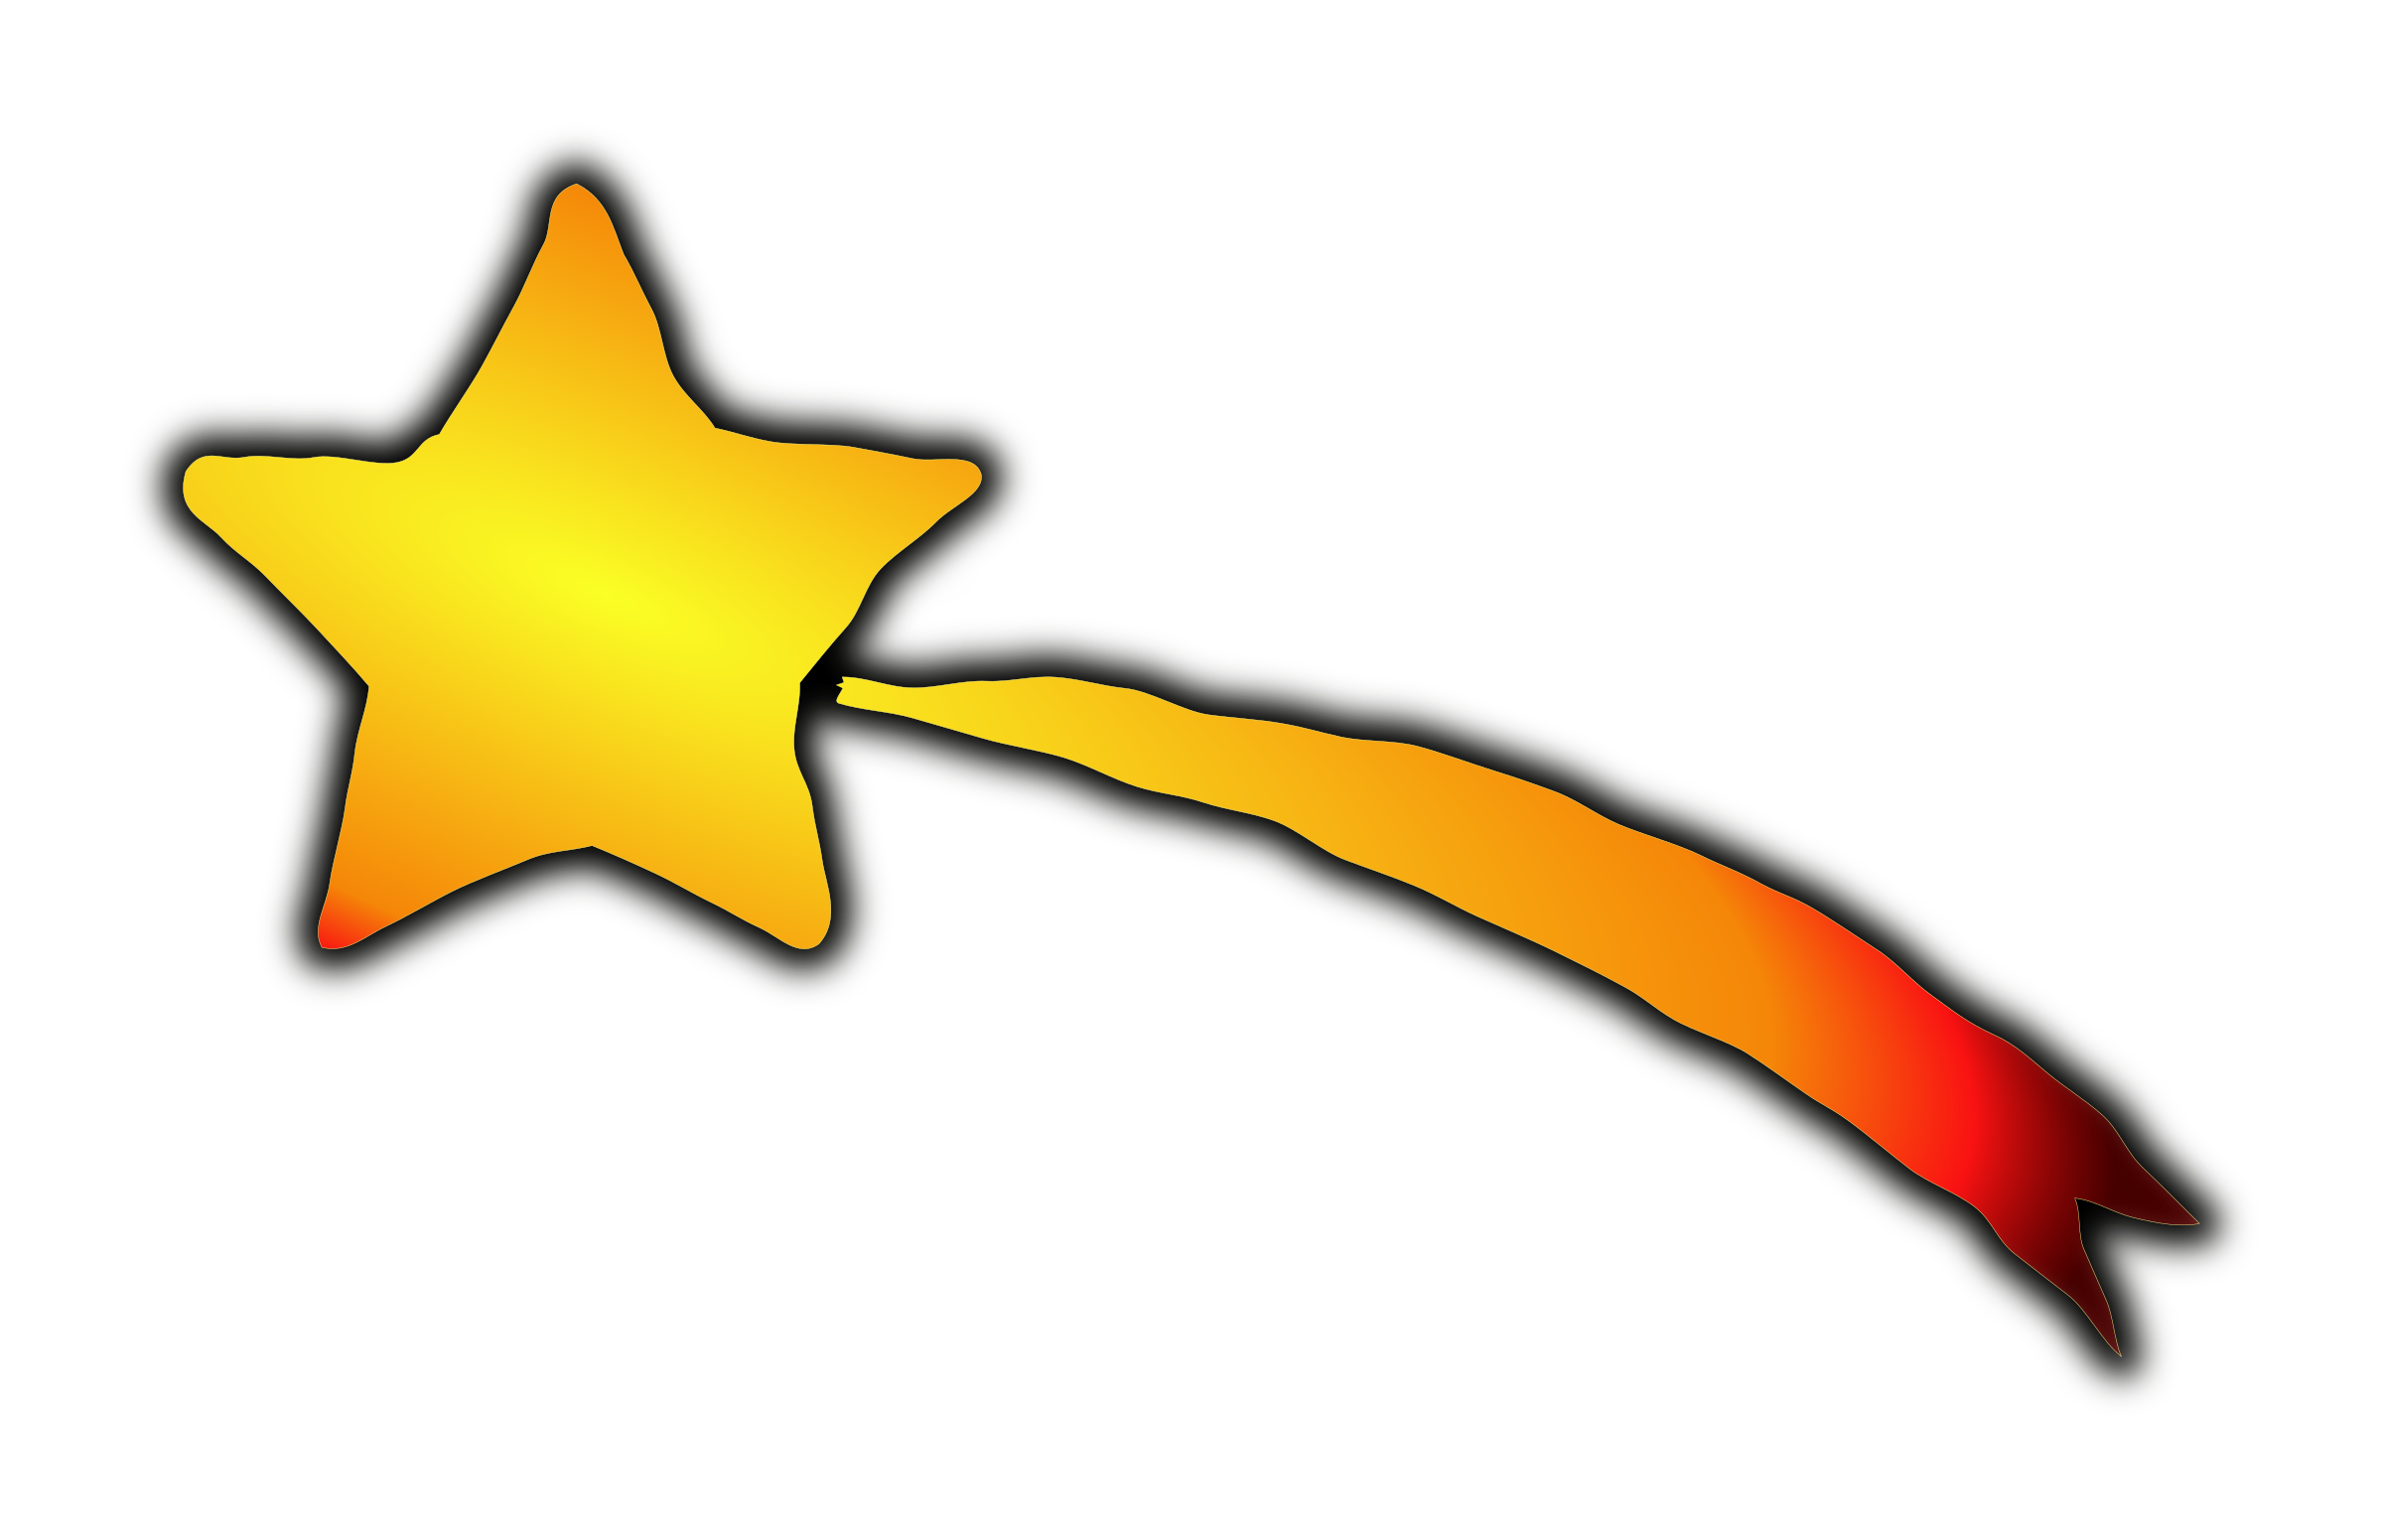 Shooting star pictures clip art clipart images gallery for.